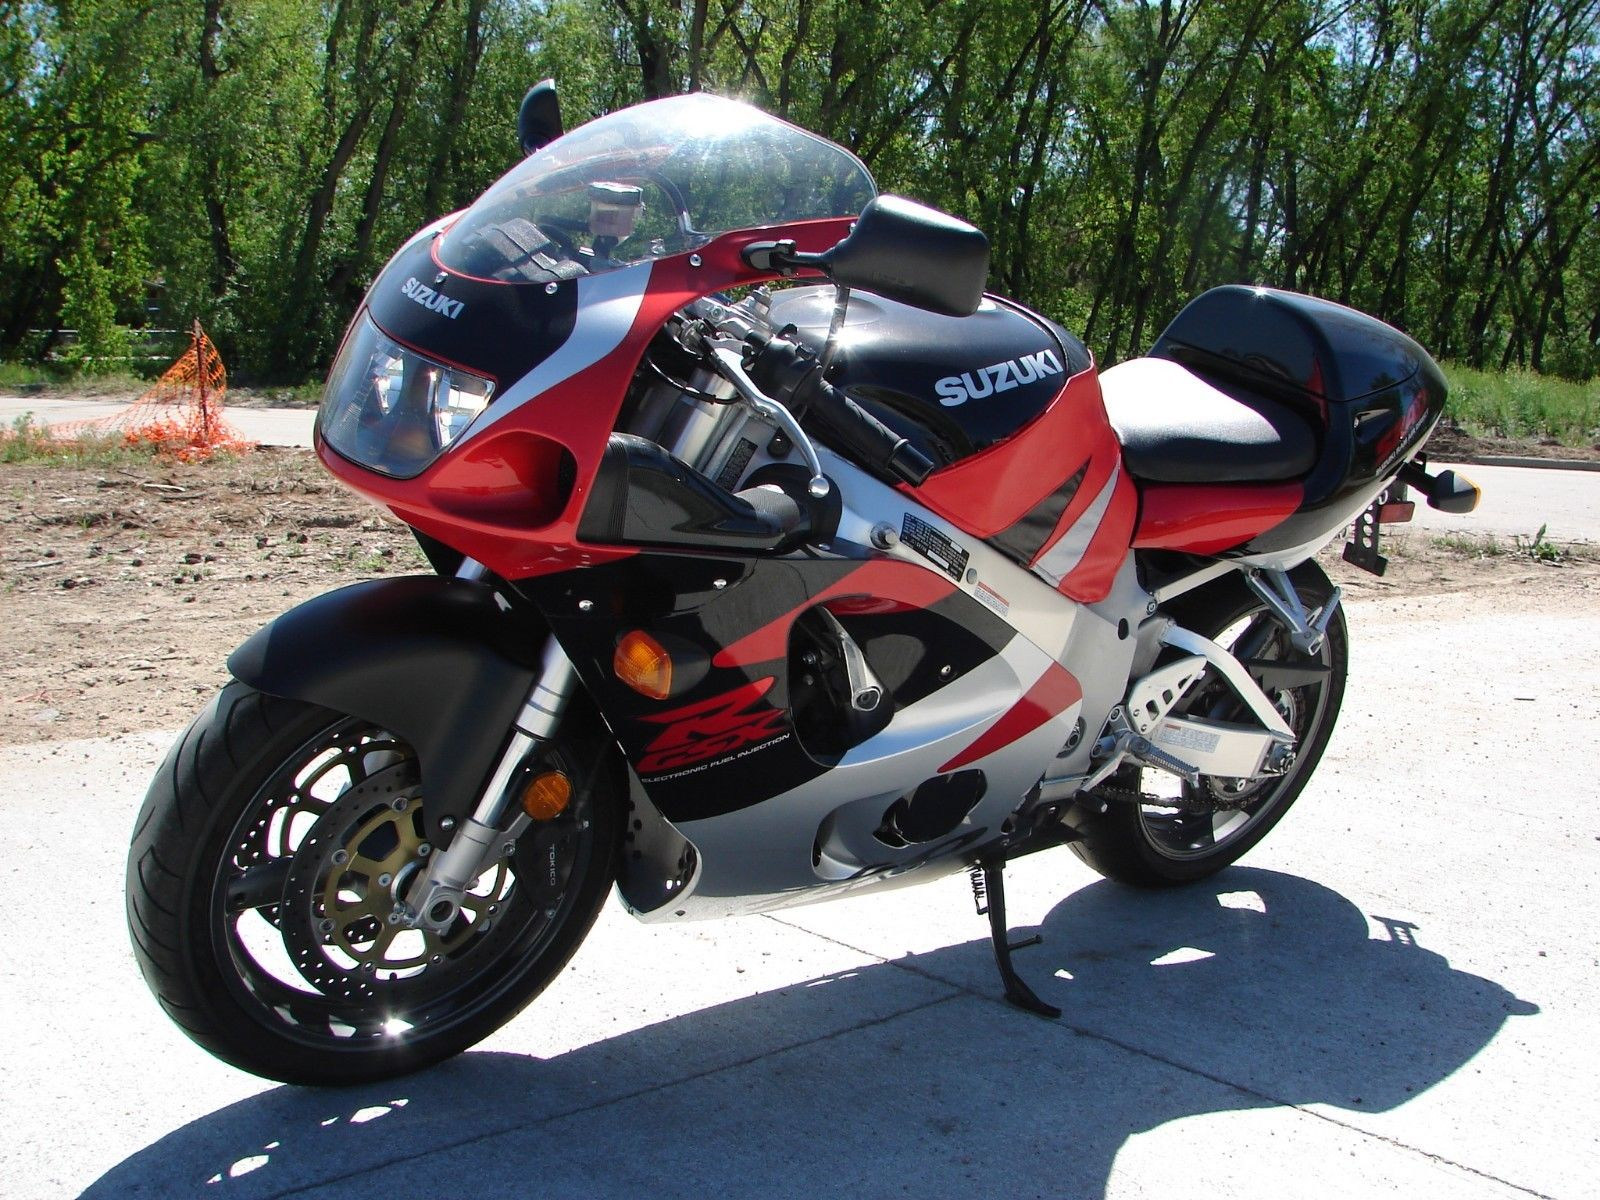 Buell Motorcycles For Sale >> Ram Air Direct: 1998 Suzuki GSX-R750 SRAD for Sale - Rare ...